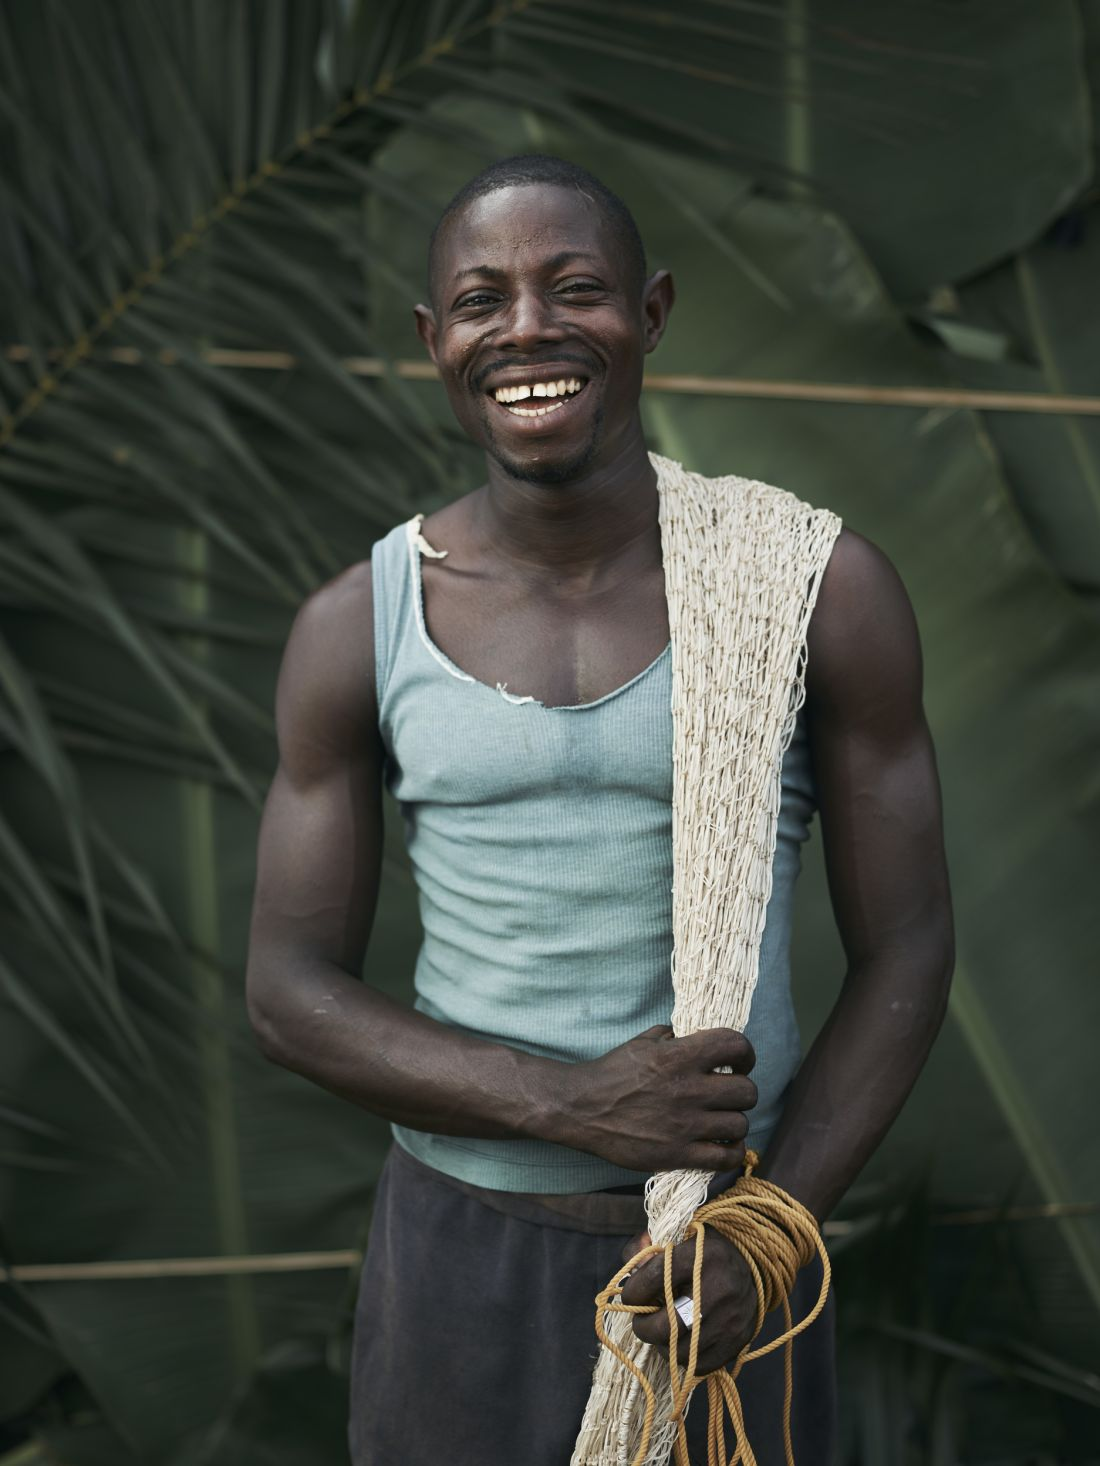 Sellu Smart, holding home-made fishing nets, made from leaves, in the village of Tombohuaun. Sellu spends at least half of his wages on healthcare for his family. If he didn't have to he would develop his farm by increasing the yield, and do more business such as buying palm oil or selling clothes. Kailahun District, Sierra Leone, May 2017. WaterAid/ Joey Lawrence